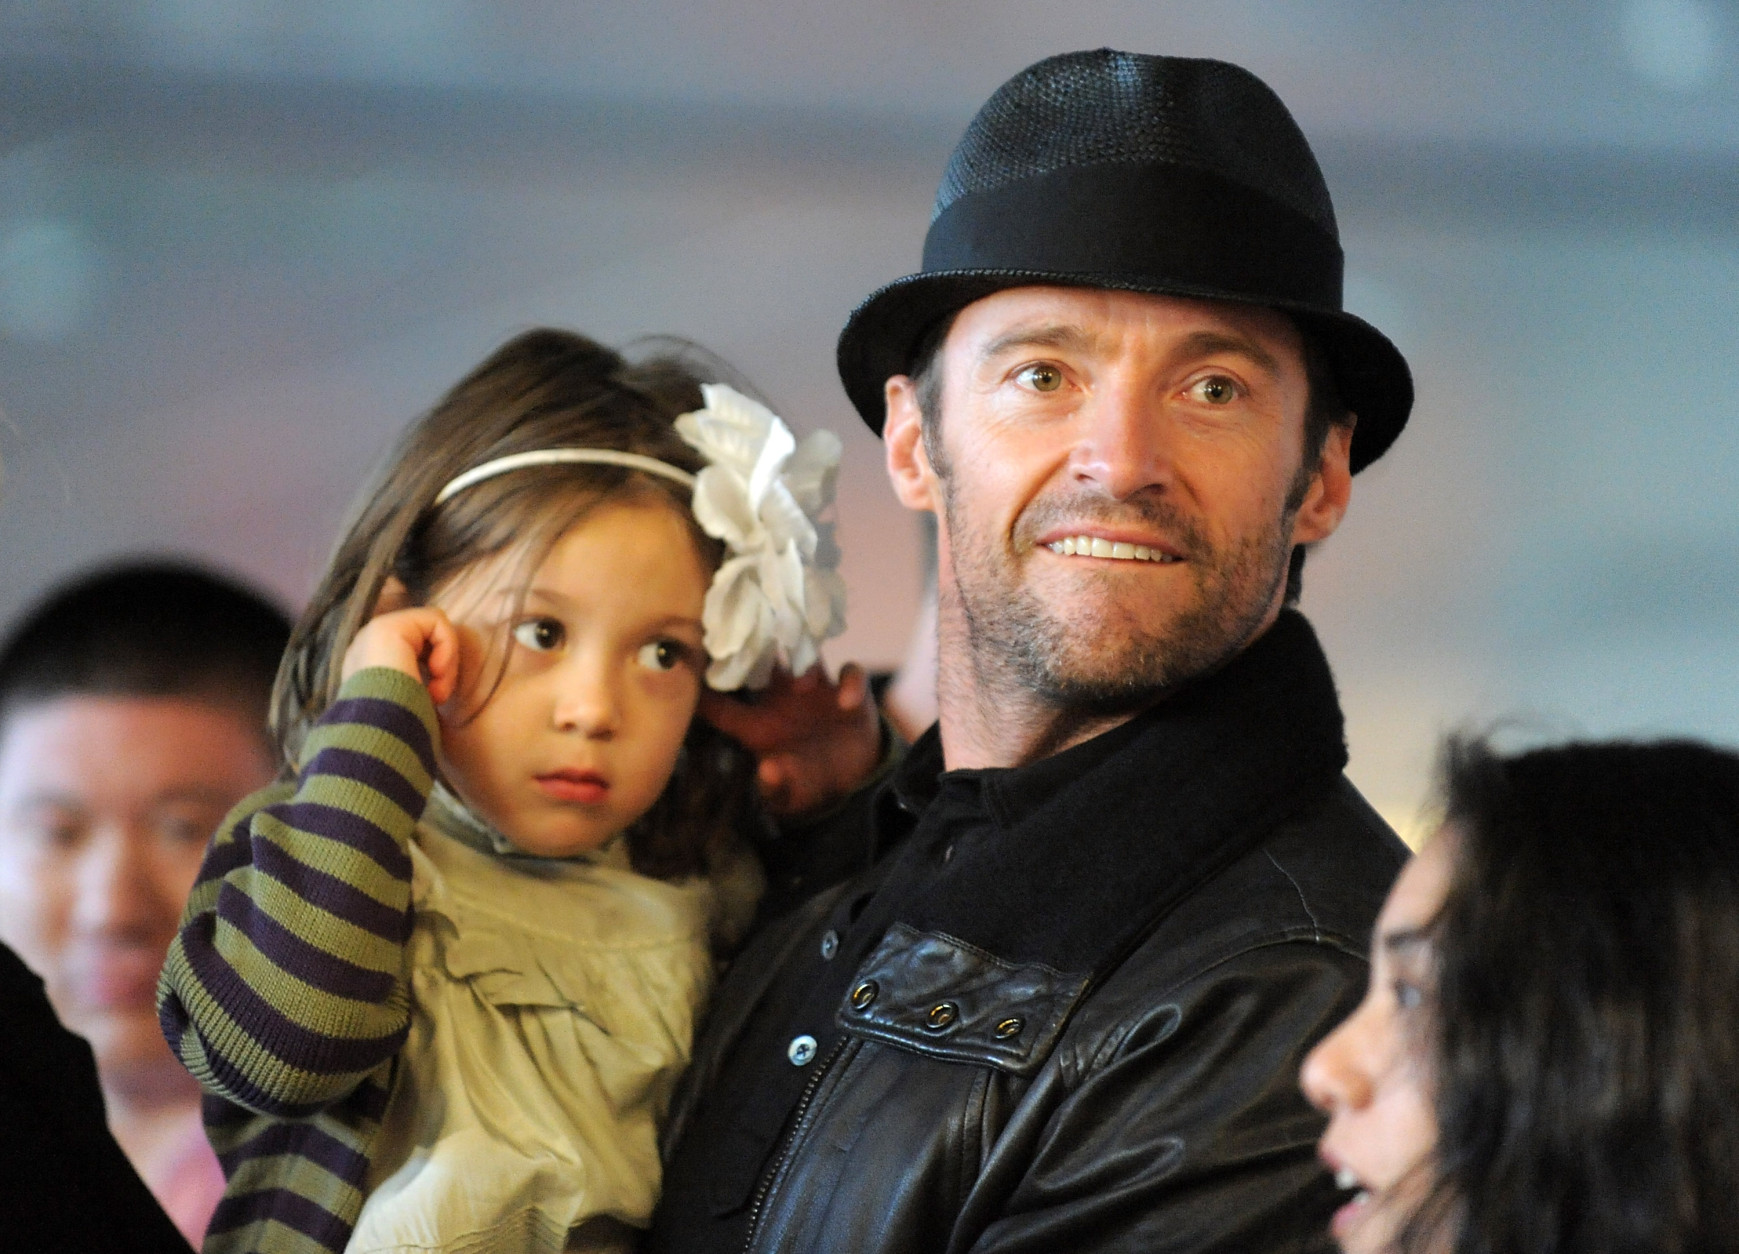 Actor Hugh Jackman holds his daughter Ava during a boxing competition charity event to benefit The East Harlem School at Exodus House, Wednesday, May 13, 2009 at the Aerospace High Performance Center in New York. (AP Photo/Evan Agostini)